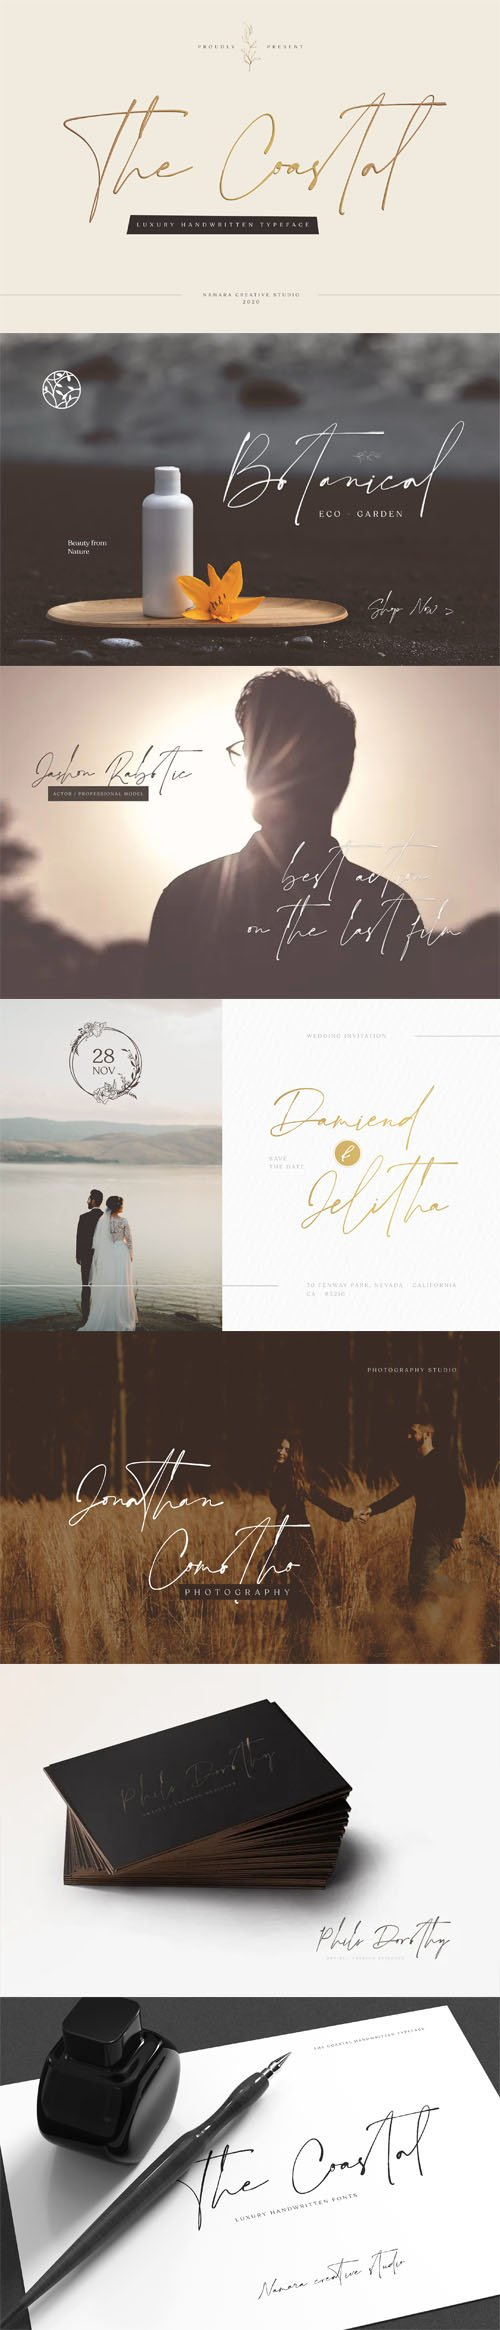 The Coastal - Luxury Handwritten Script Font